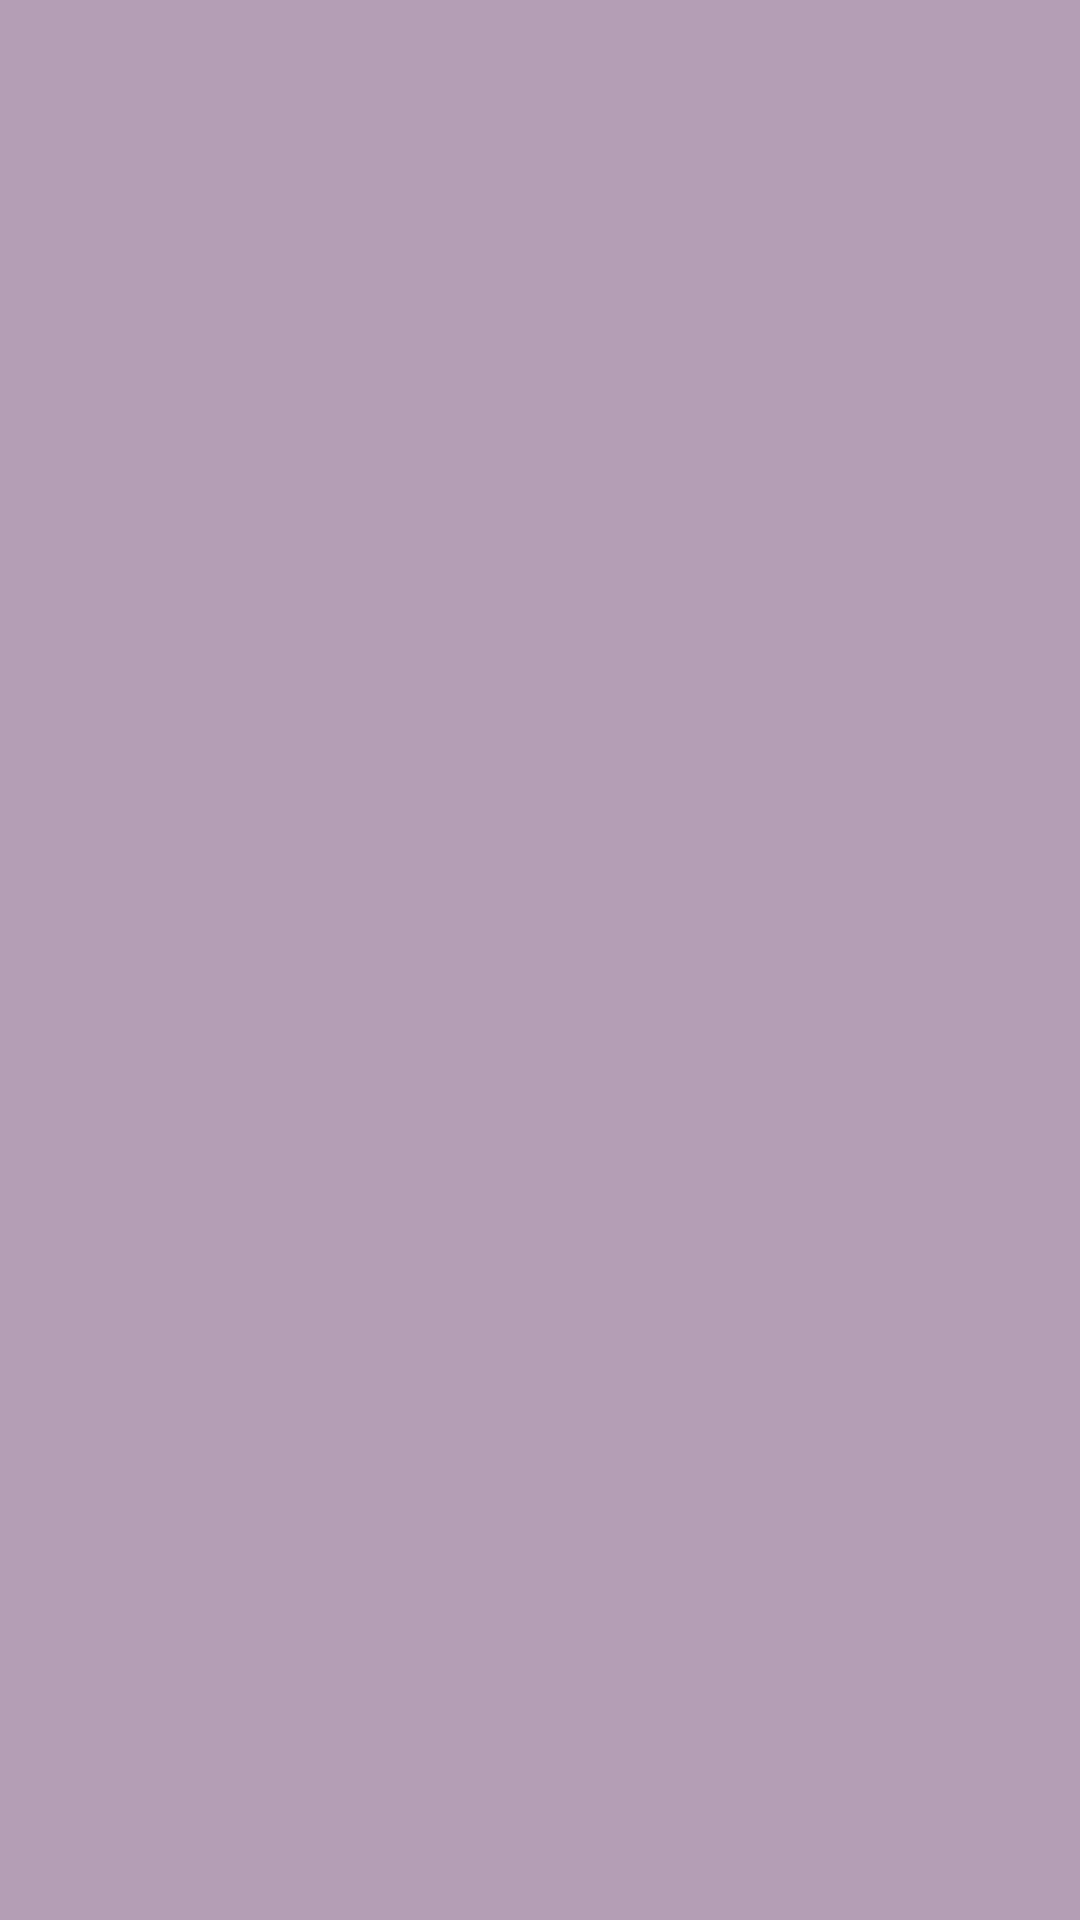 1080x1920 Pastel Purple Solid Color Background